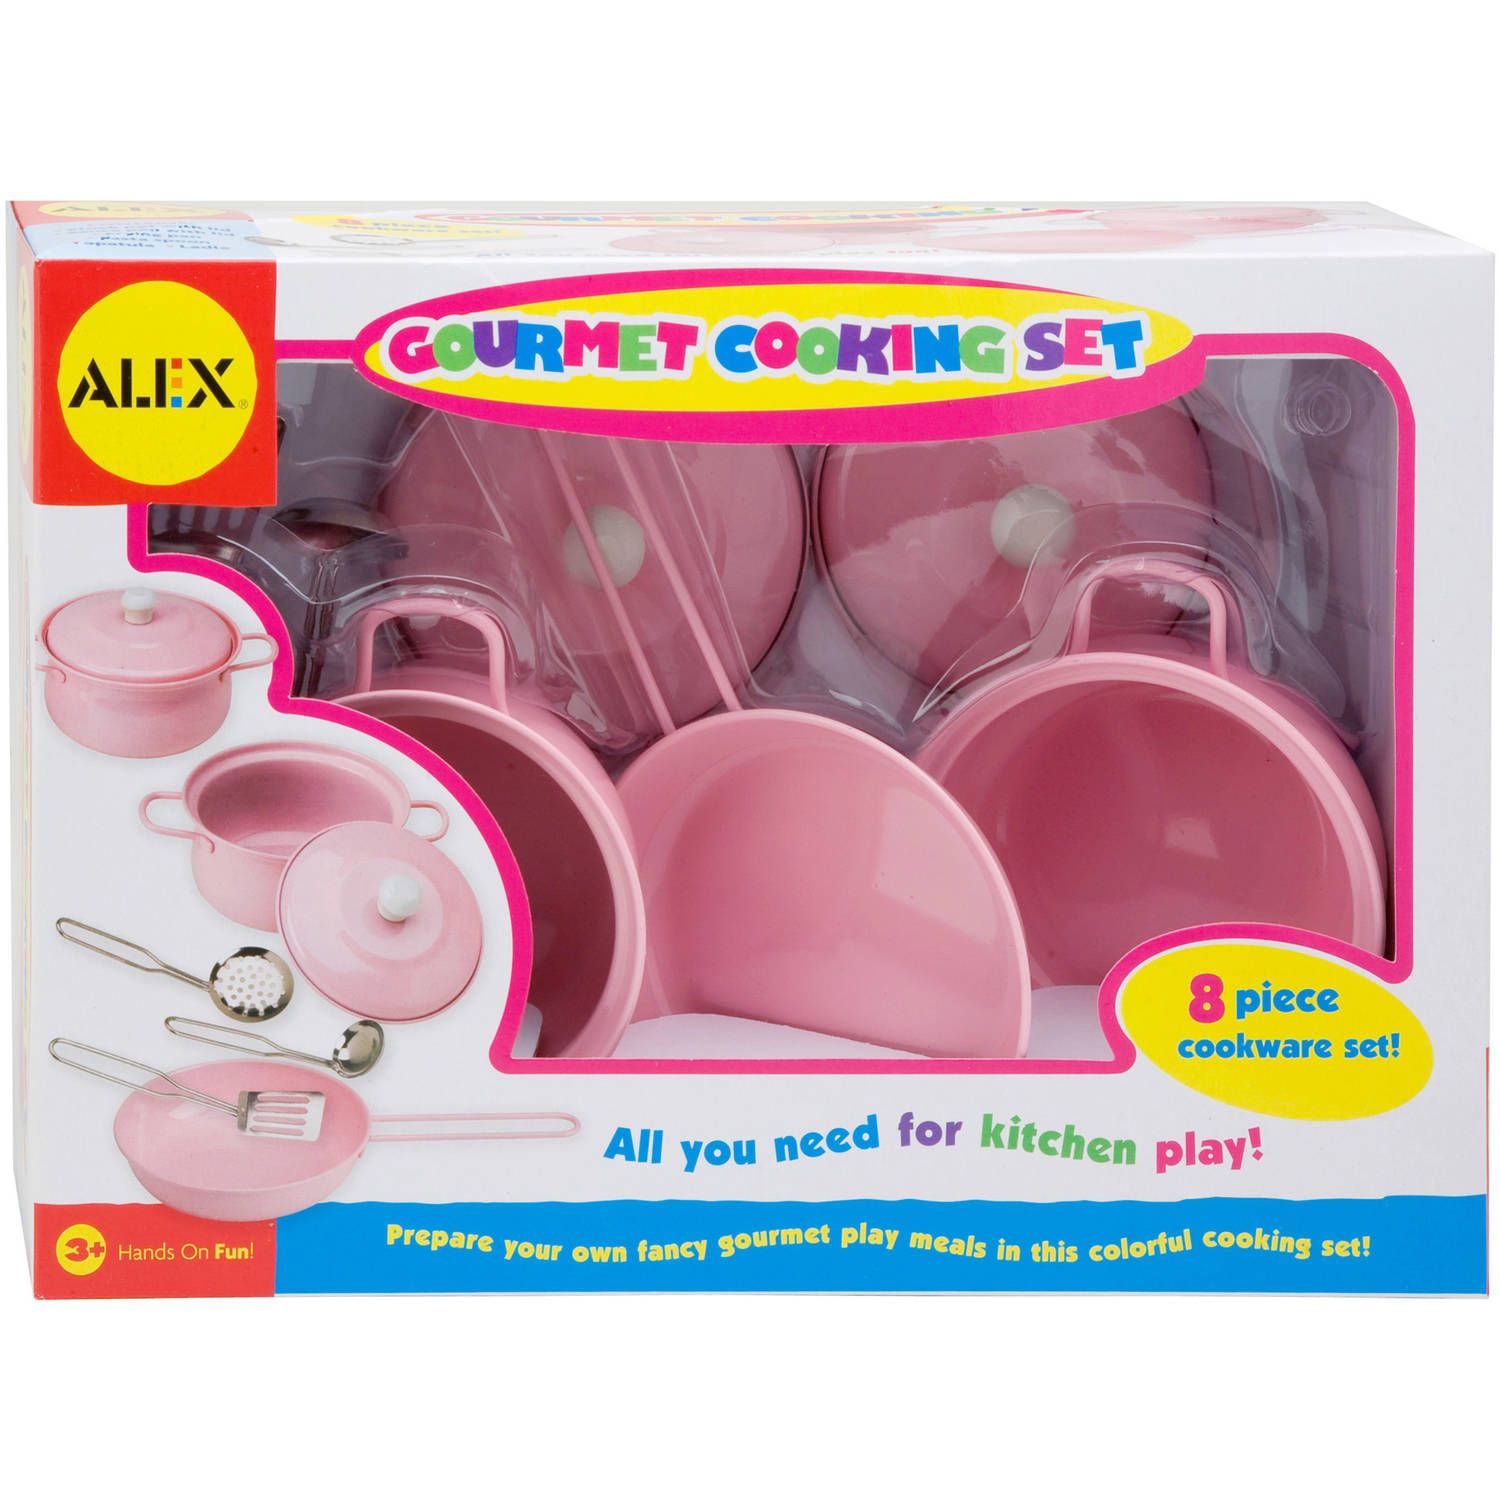 ALEX Toys Gourmet Cooking Set